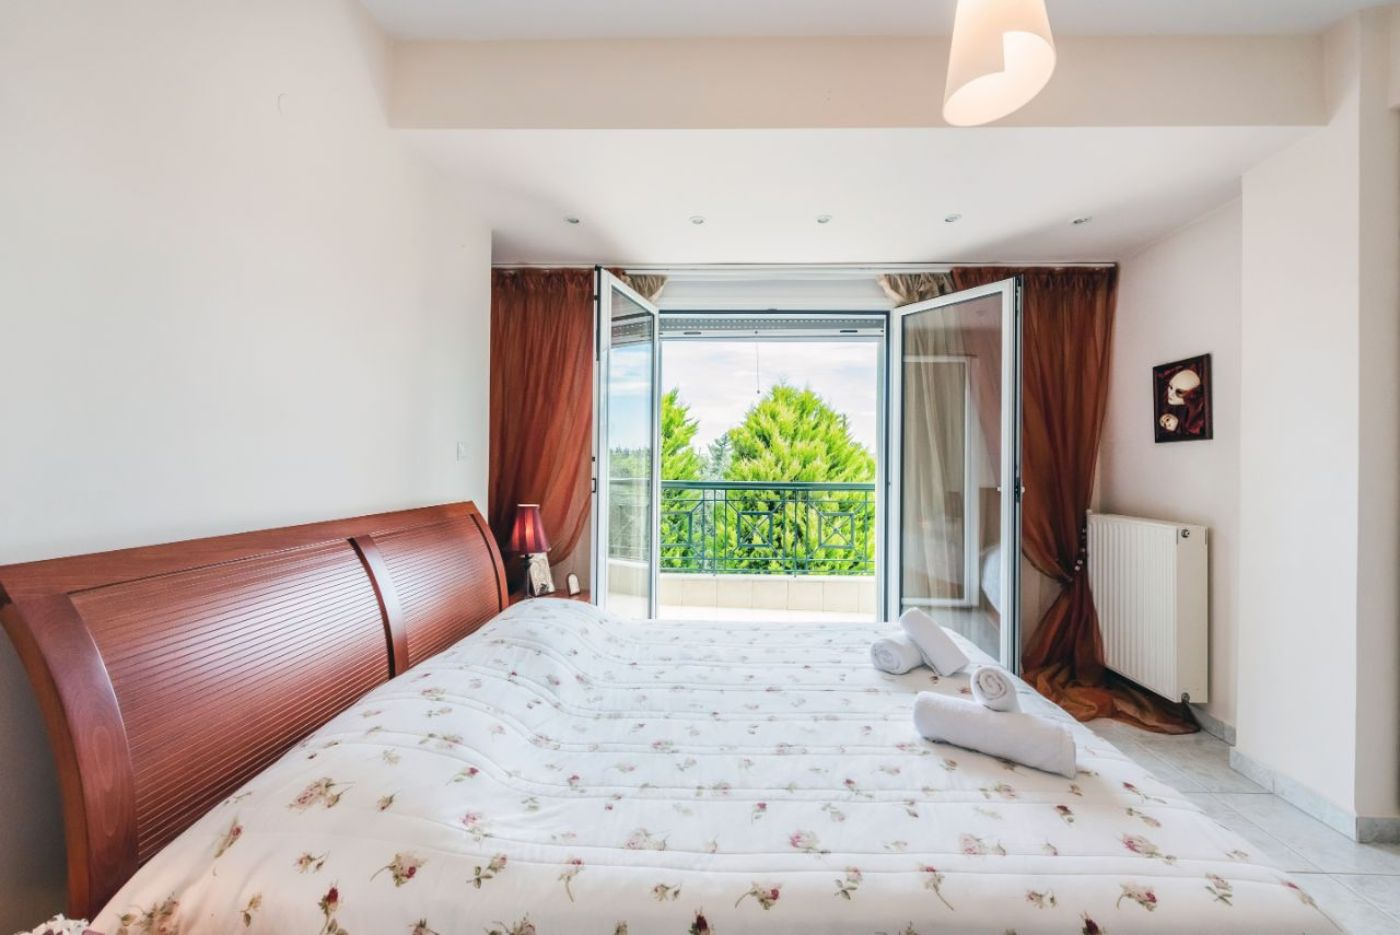 Bedroom 1 with 1 Double Bed and Balcony